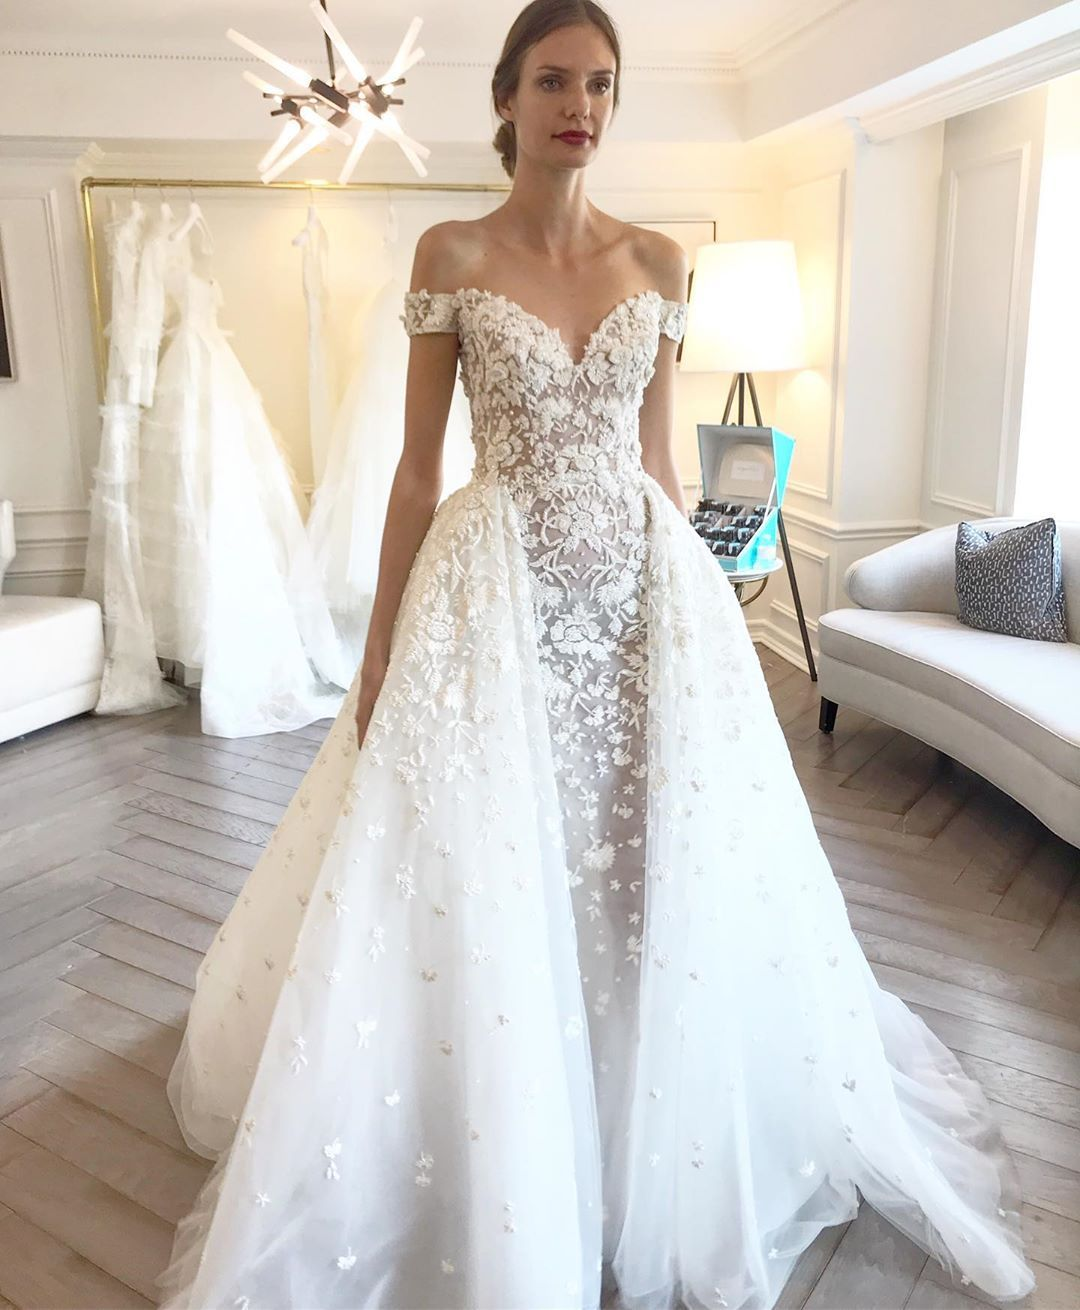 Couture Bride Style Fabia Off Shoulder Floral Embroidered Sheath Gown With Ballgown Overskirt From Zuhair Murad Spring 20 Ball Gowns Wedding Dresses Dresses [ jpg ]